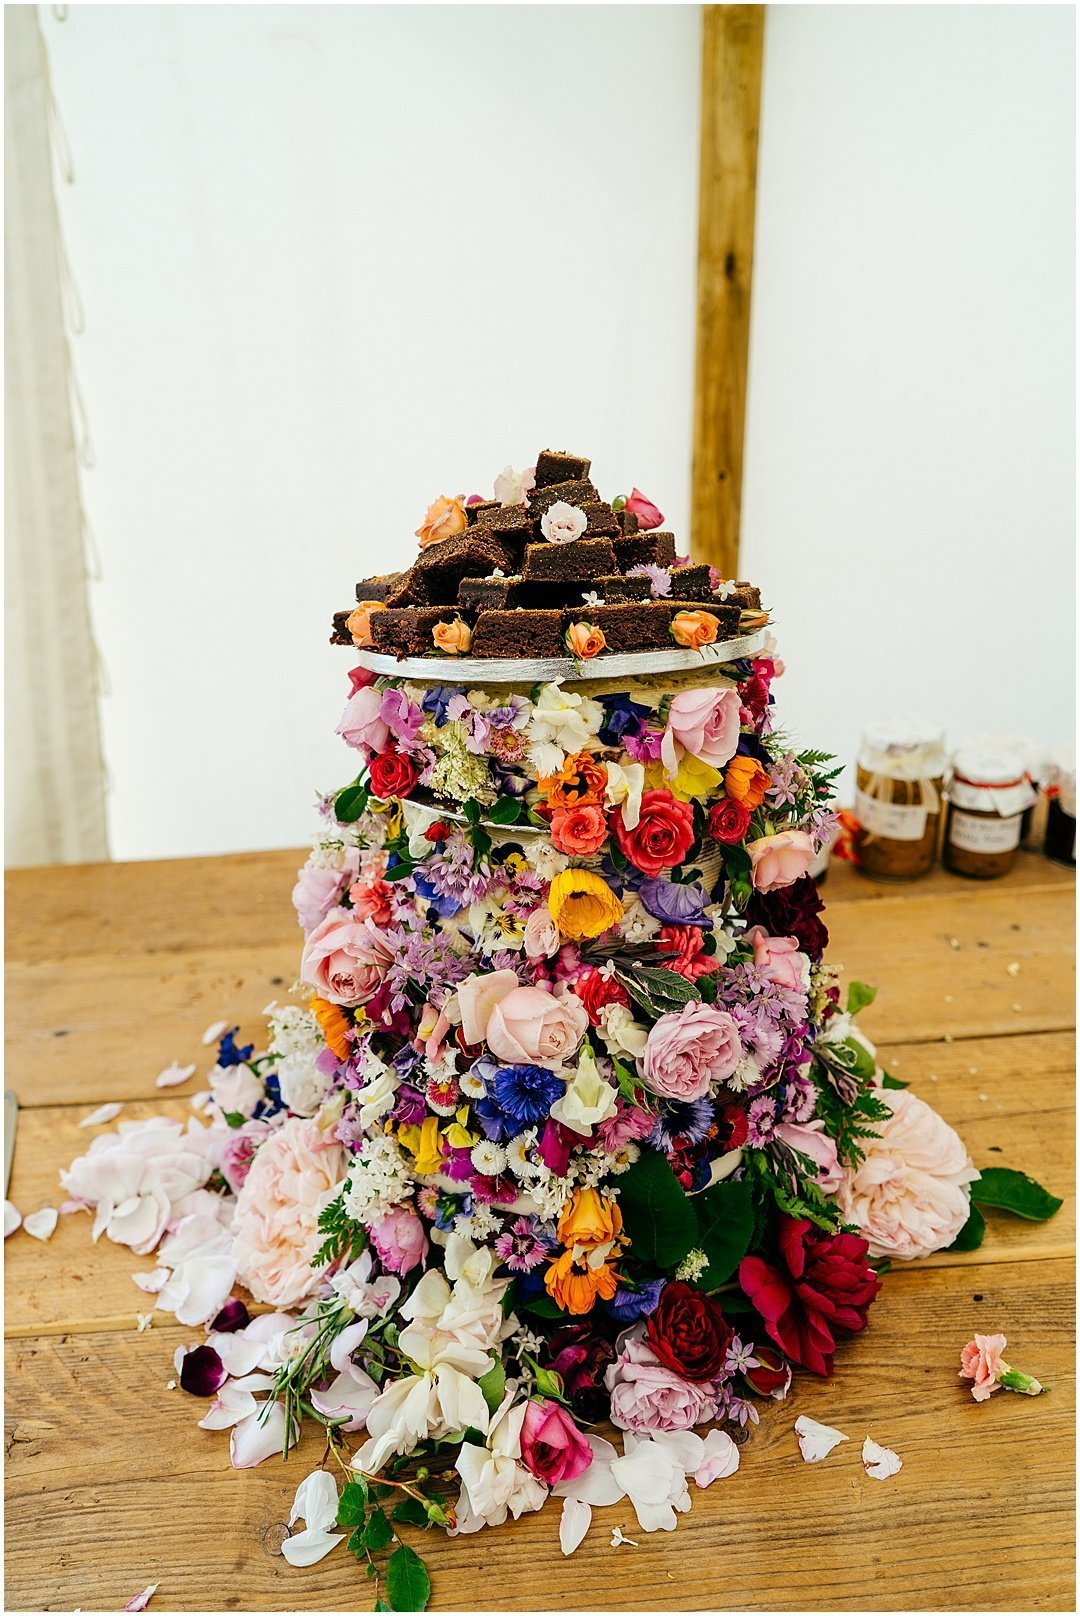 Colourful Wedding Cake with edible flowers at festival wedding at Sparkford Hall